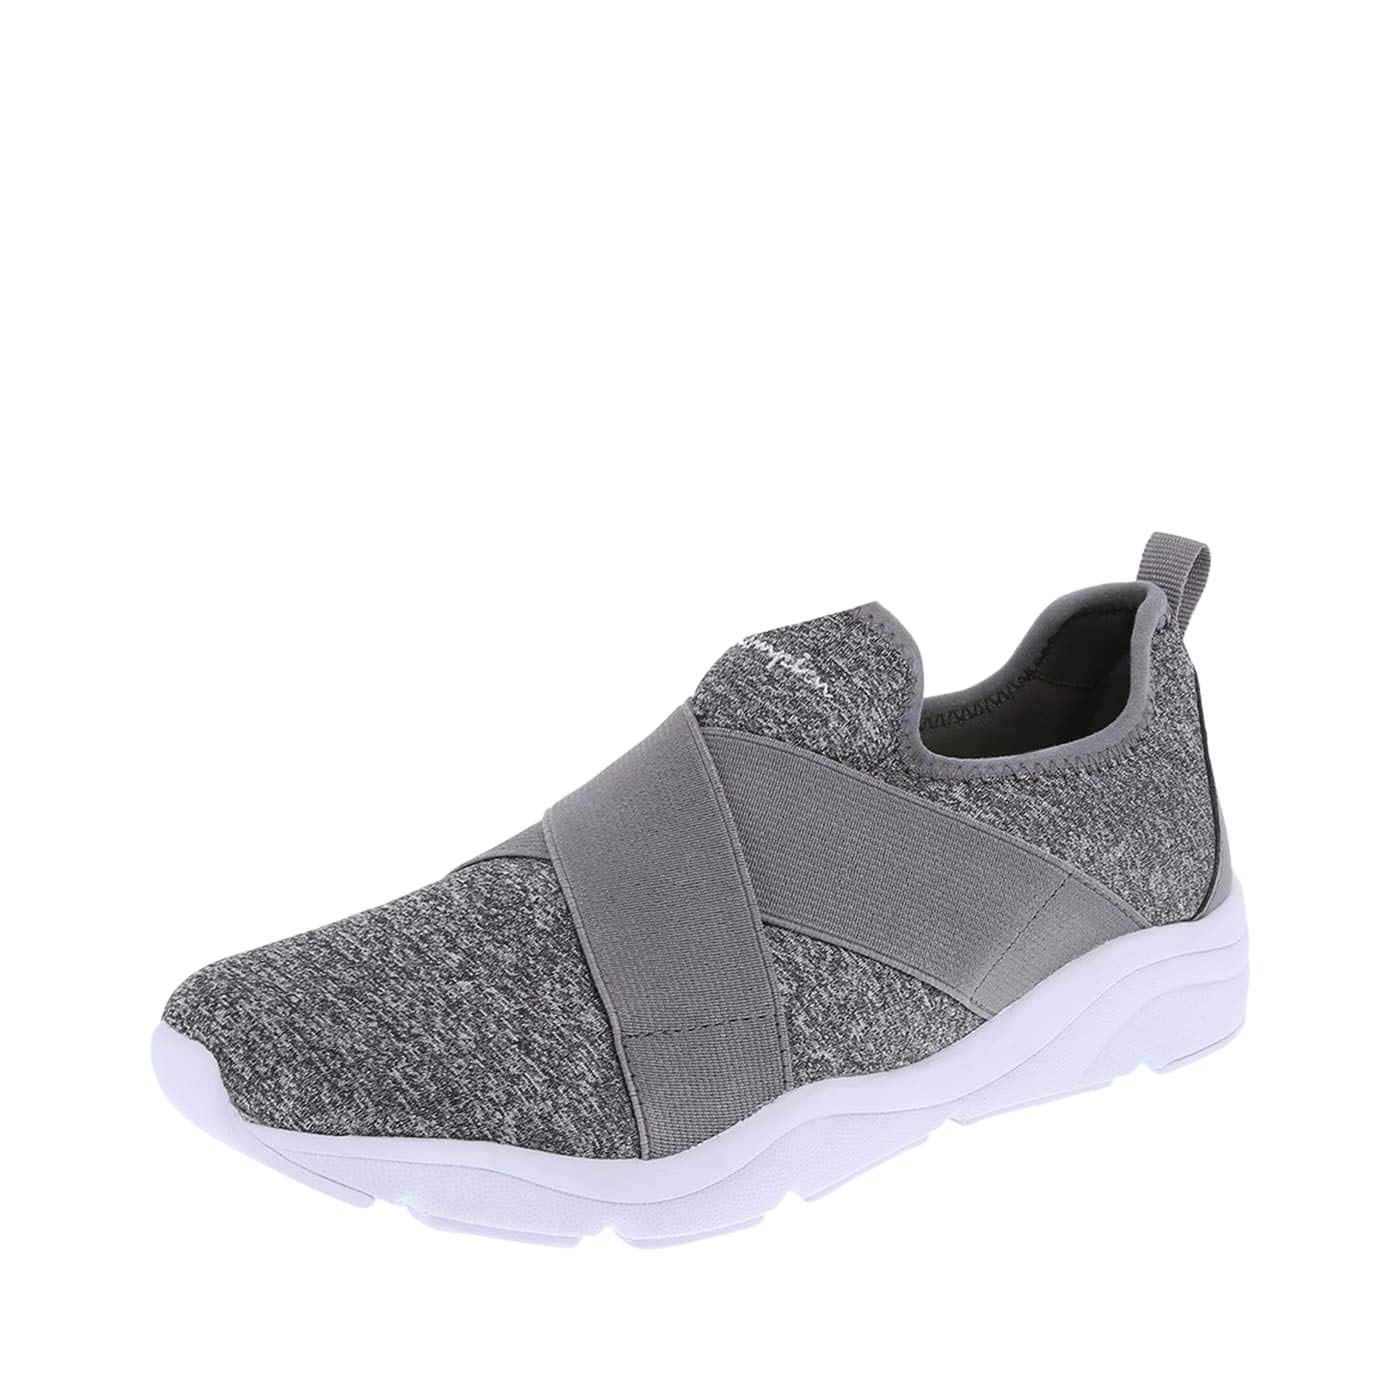 c2325205397 Champion Rival Women s Slip On Running Shoes - Trendy   Stylish - Casual